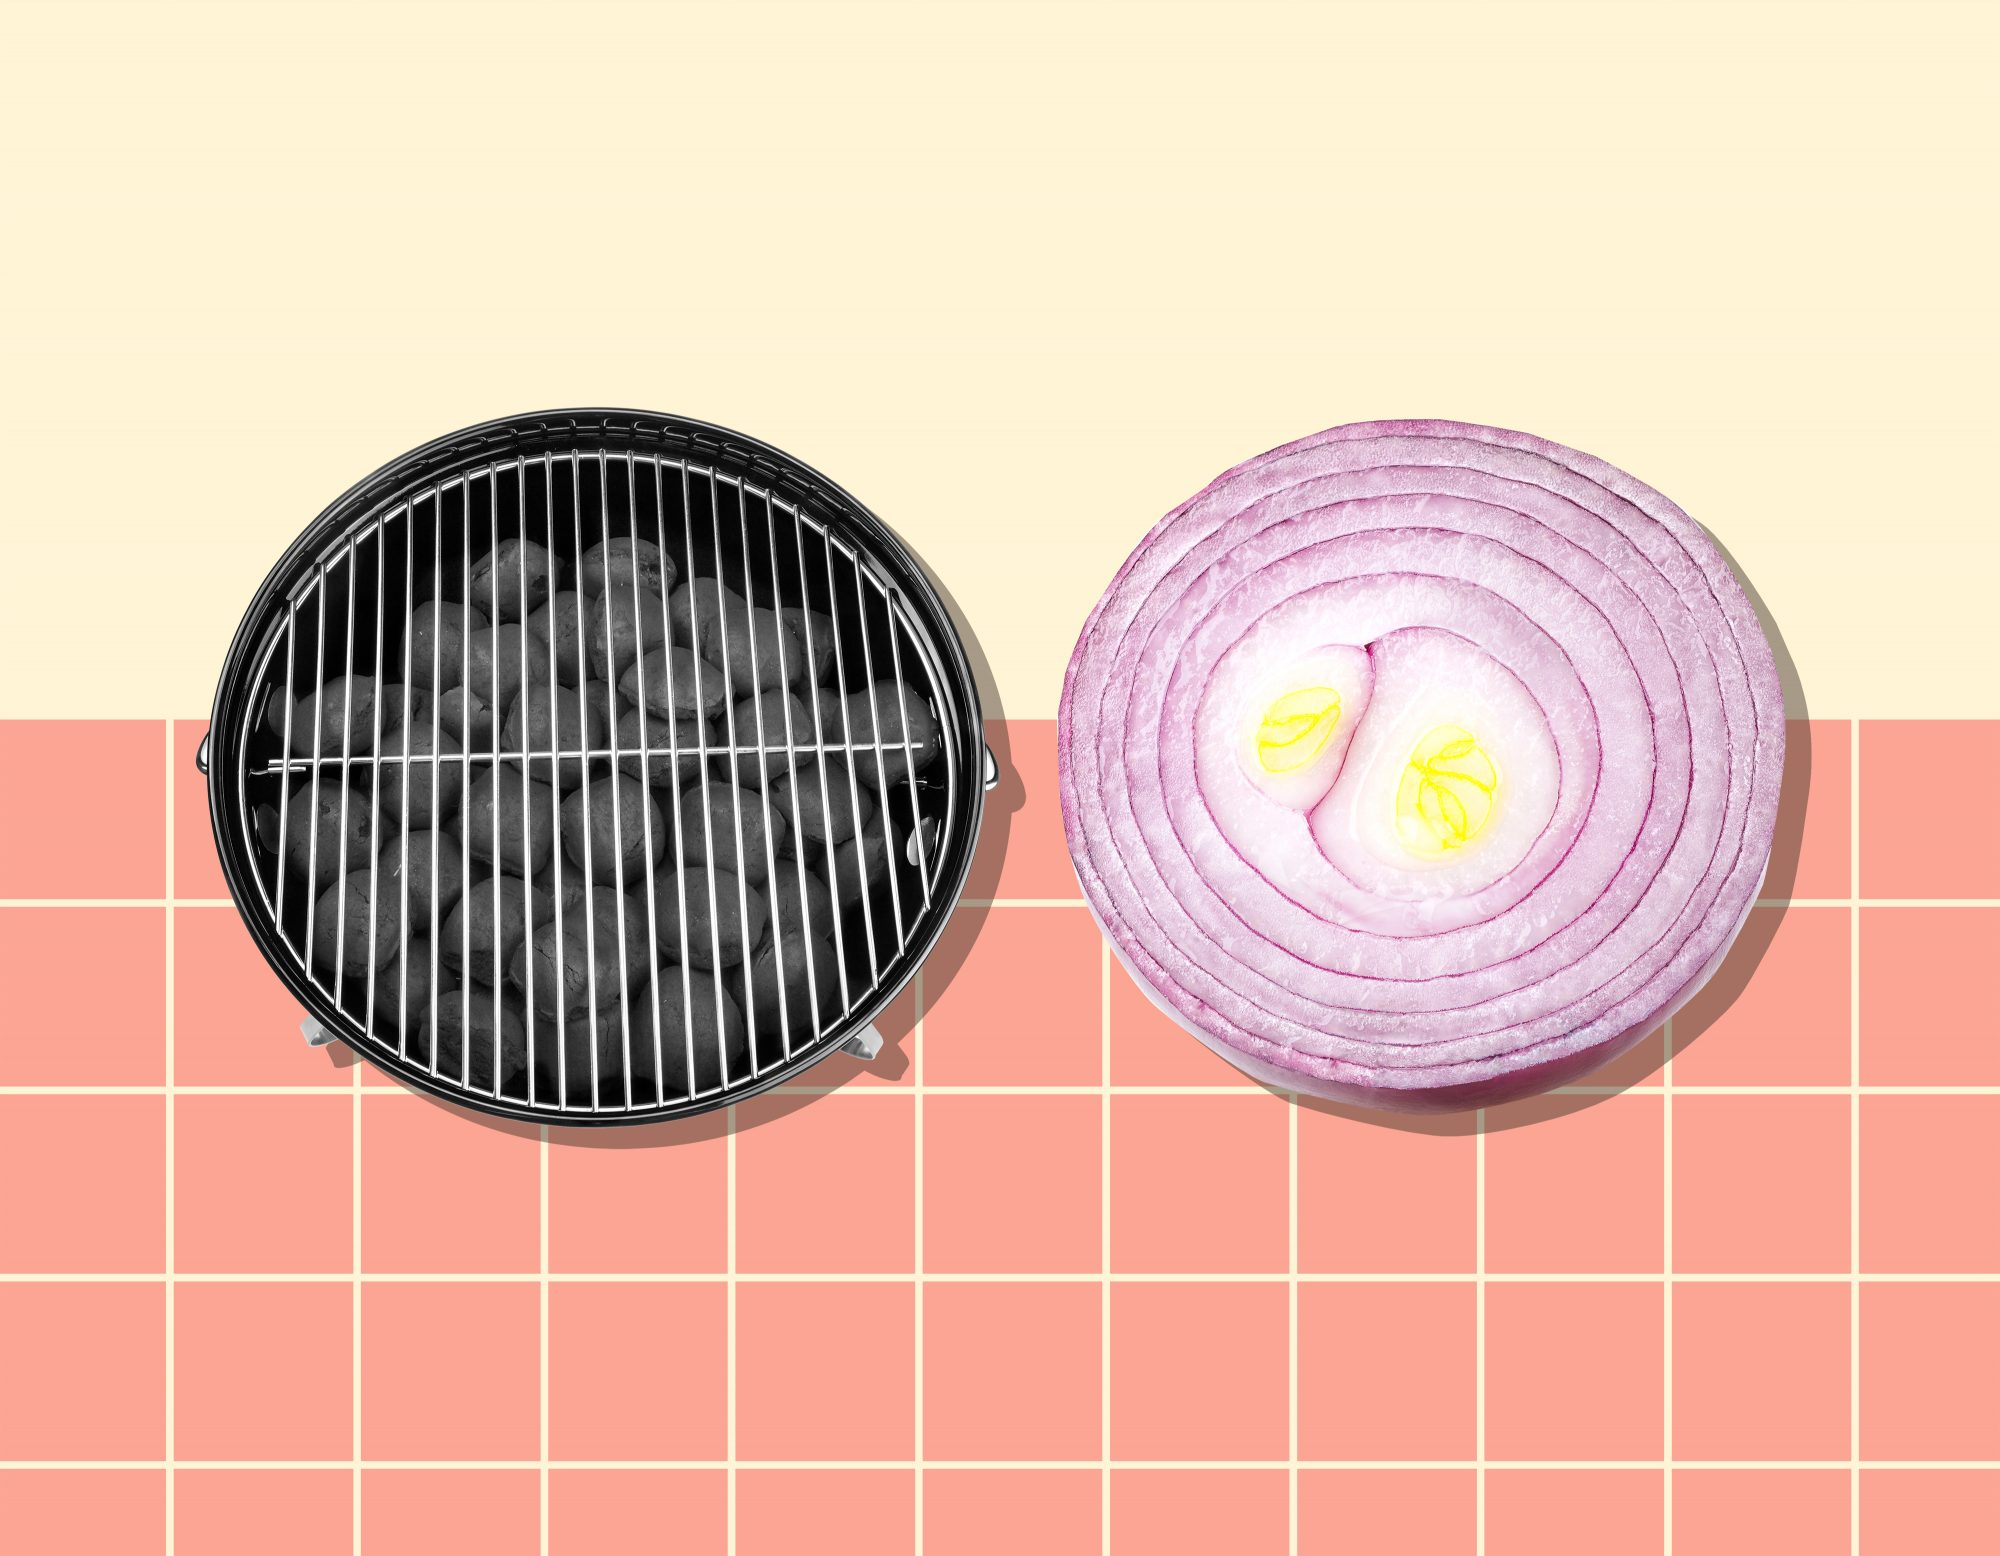 3 Clever Grill-Cleaning Hacks Using Things in Your Pantry